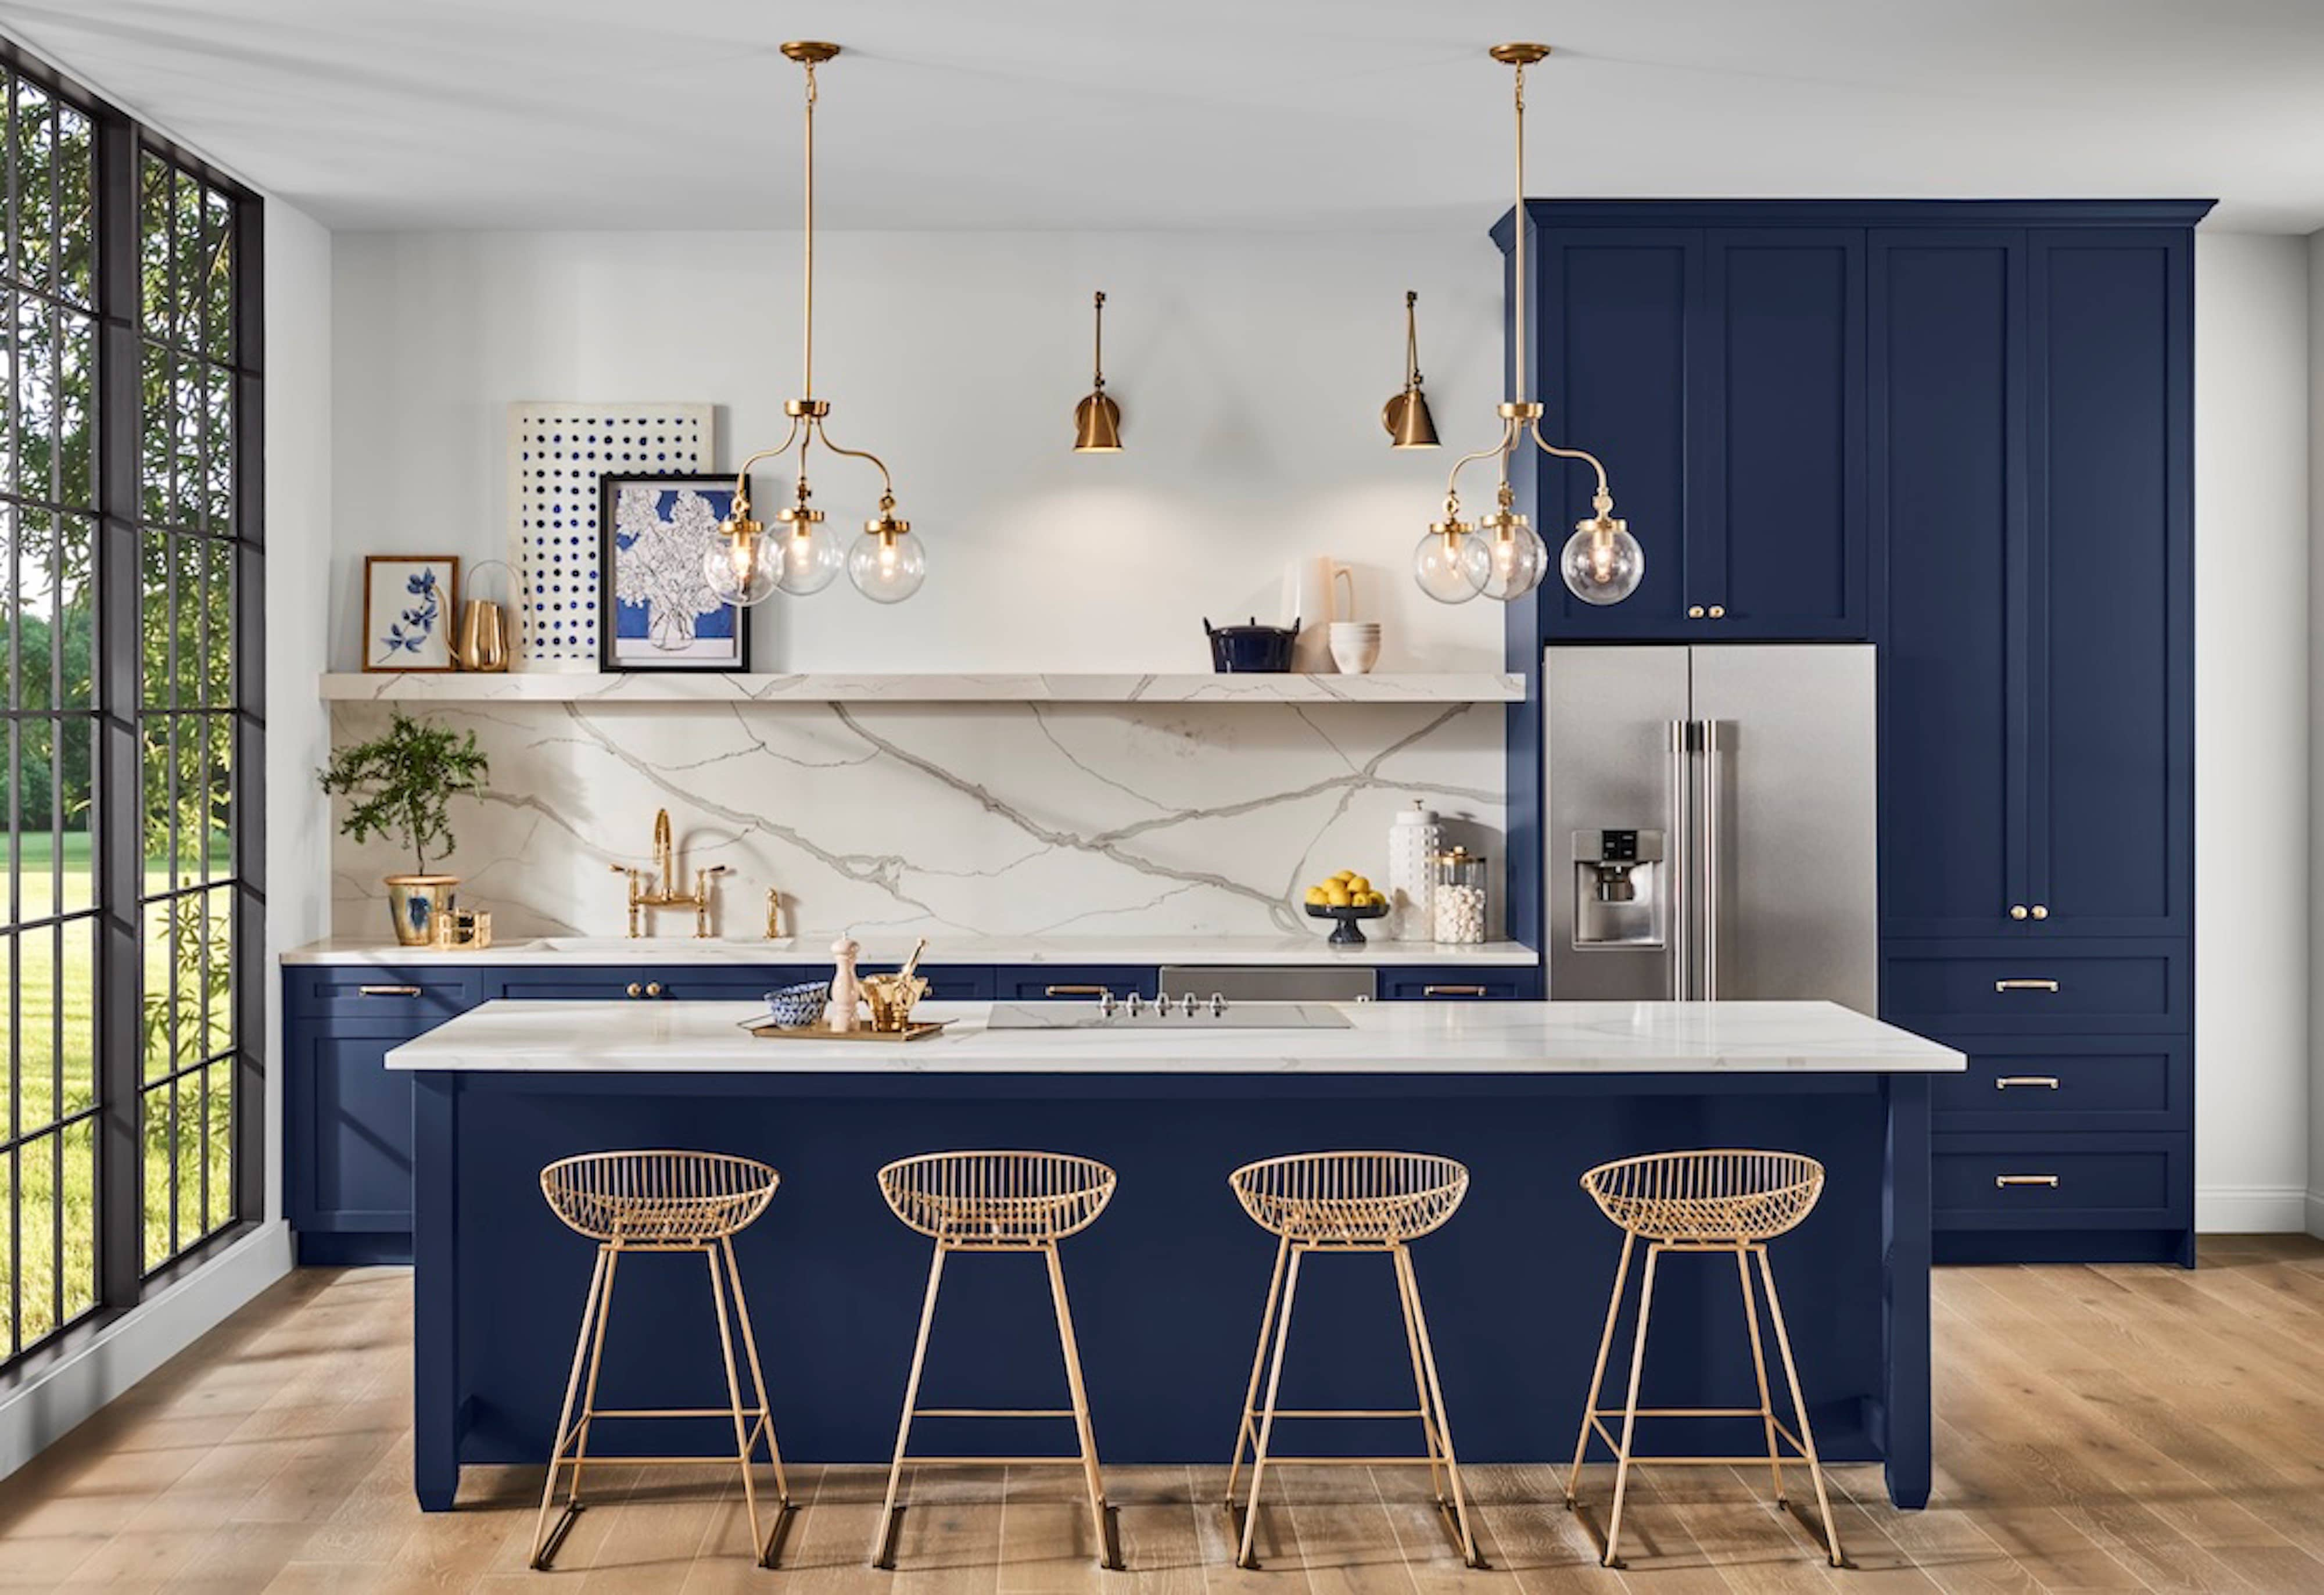 Top Home Decor Trends for American Homes in 2020